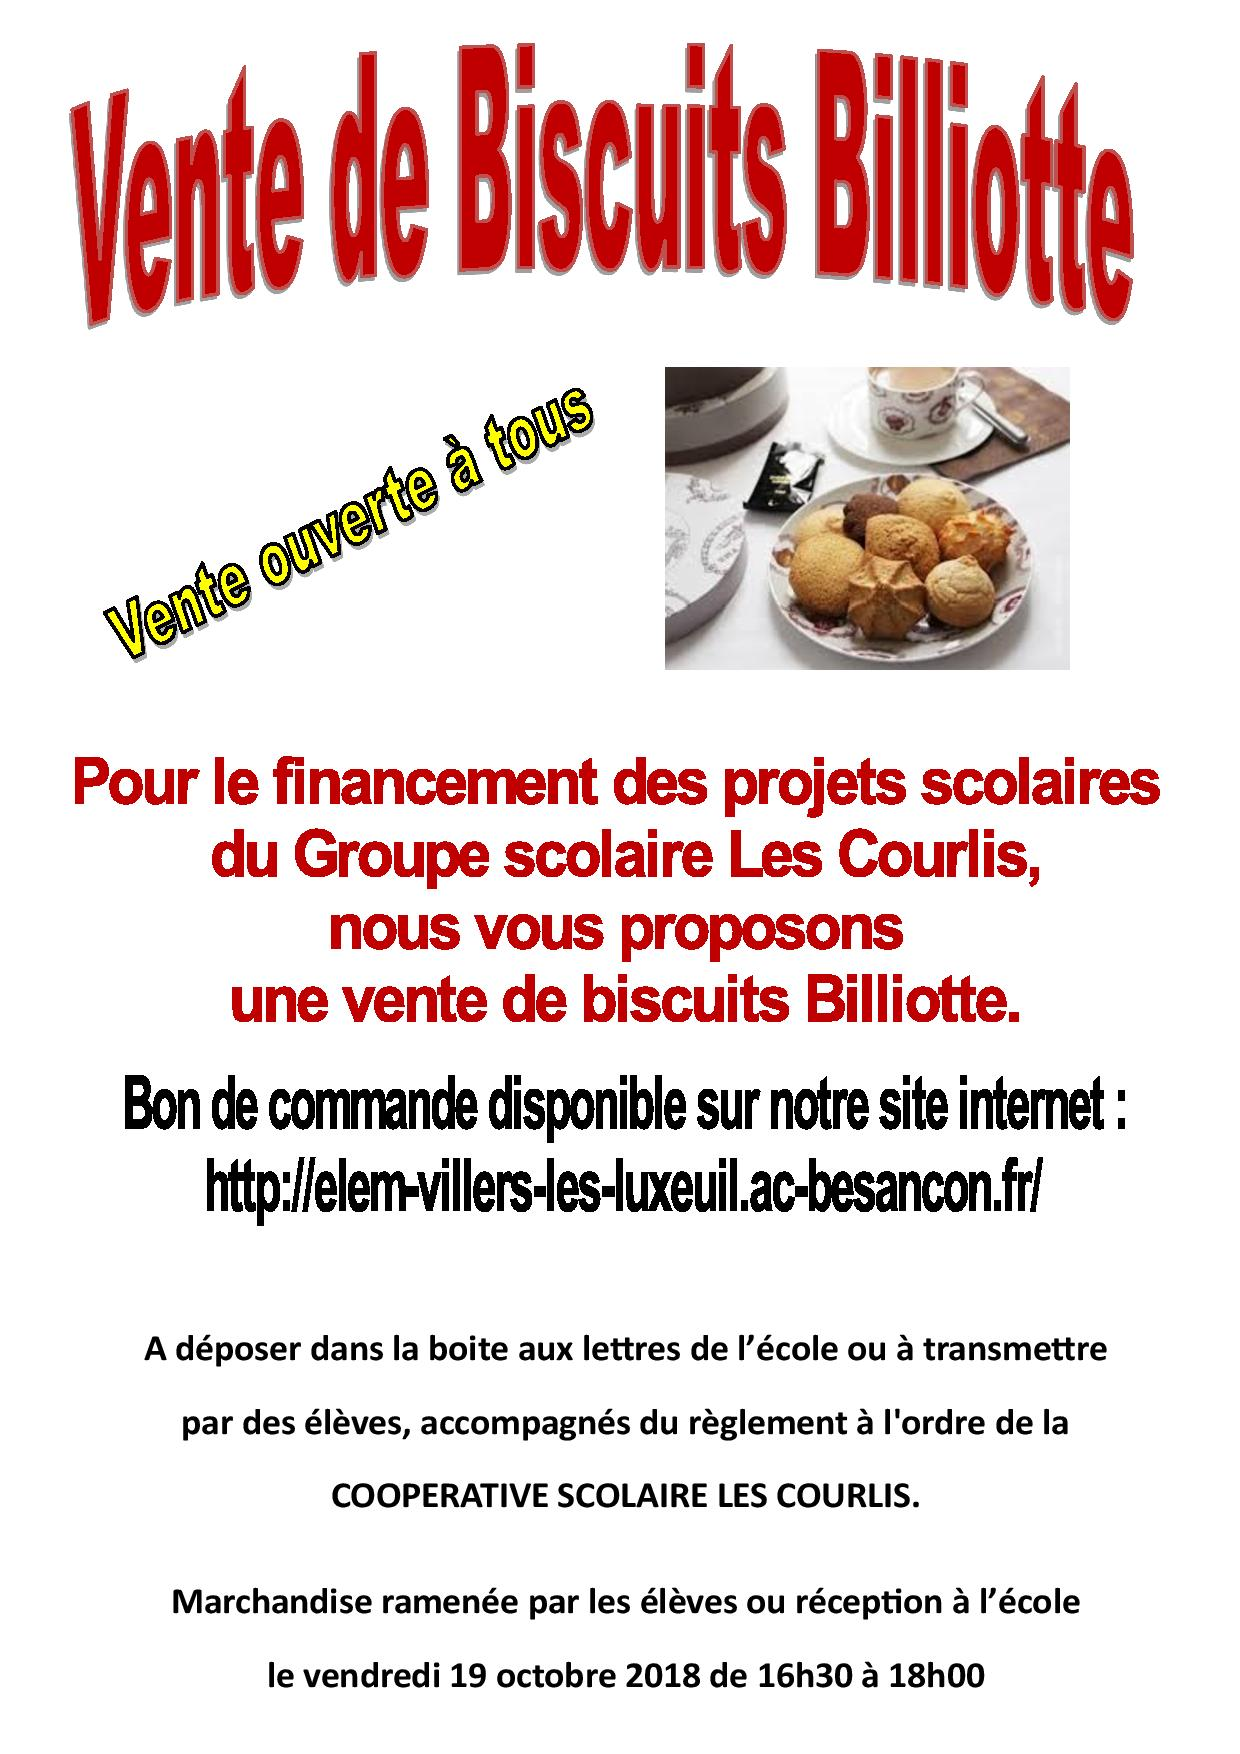 https://www.villers-les-luxeuil.com/projets/villers/files/images/2018_Flyers_Tracts/2018_10_19_vente_billiote.jpg